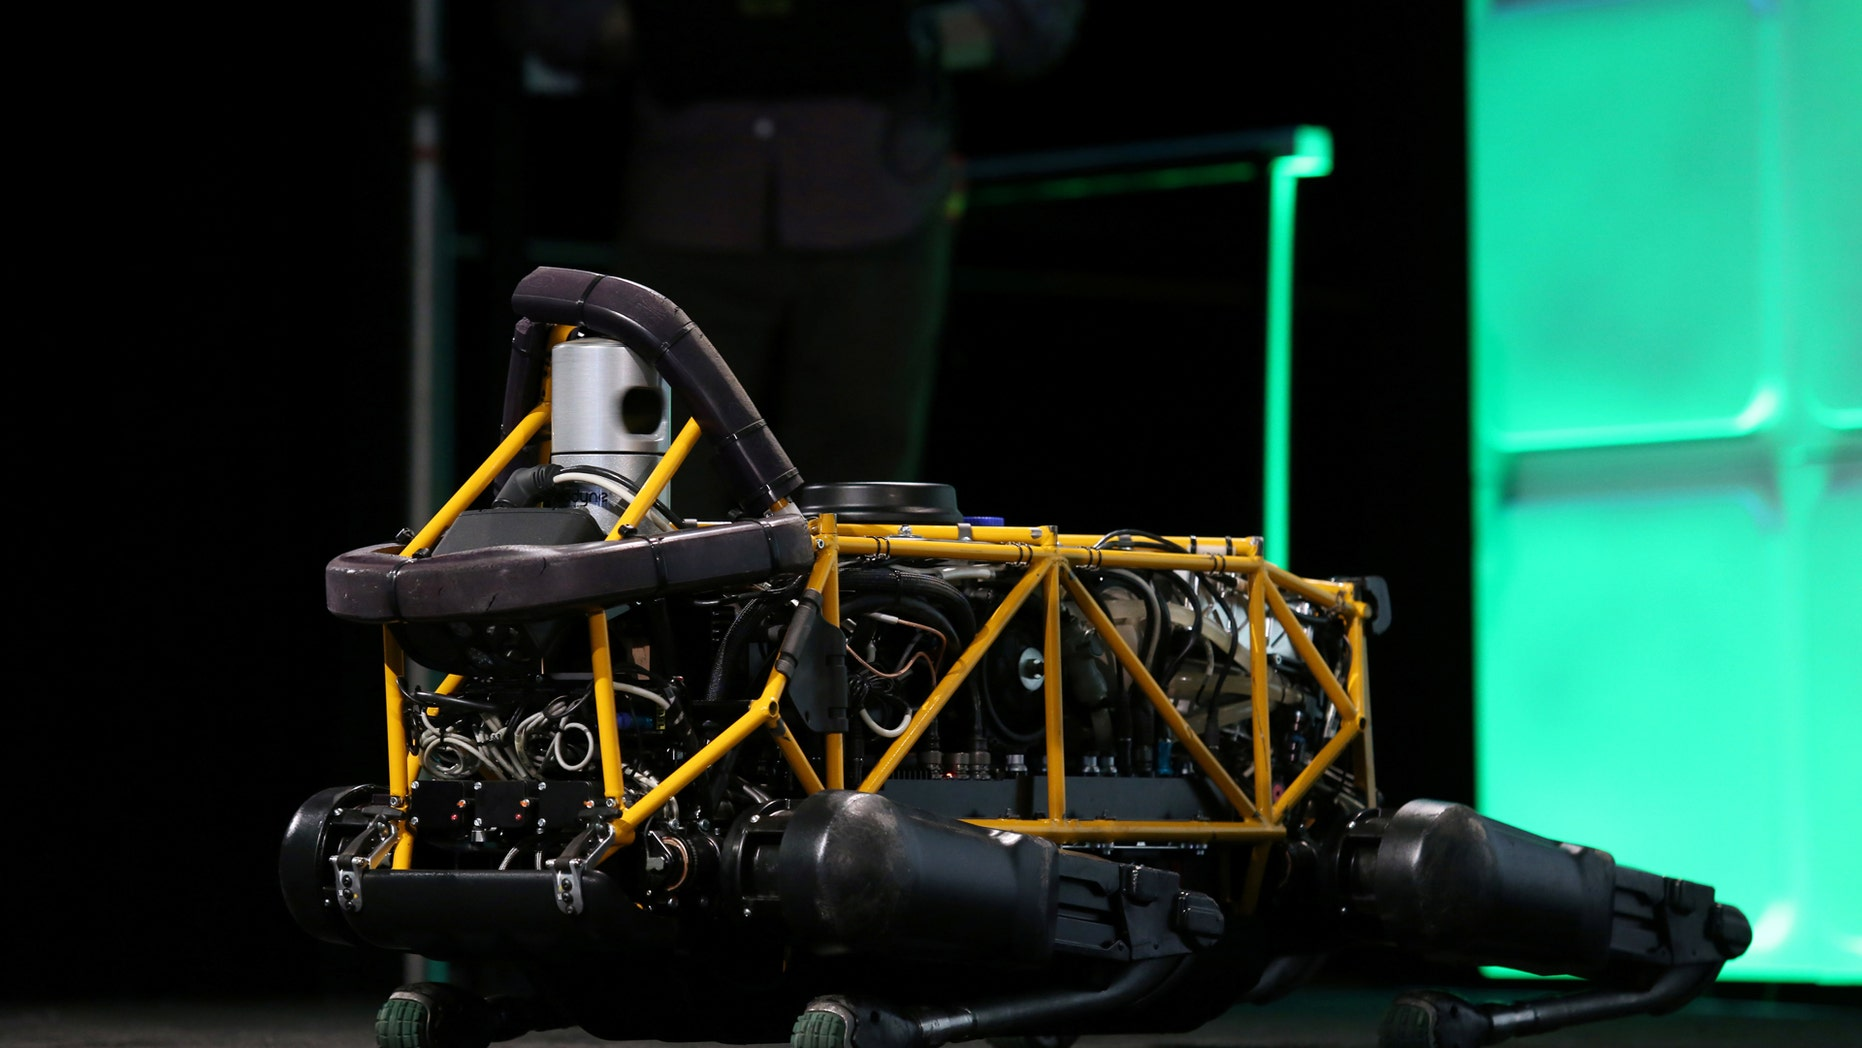 File photo: oston Dynamics' Spot robot lies down on the stage during 2016 TechCrunch Disrupt in San Francisco, California, U.S. September 14, 2016. (REUTERS/Beck Diefenbach)